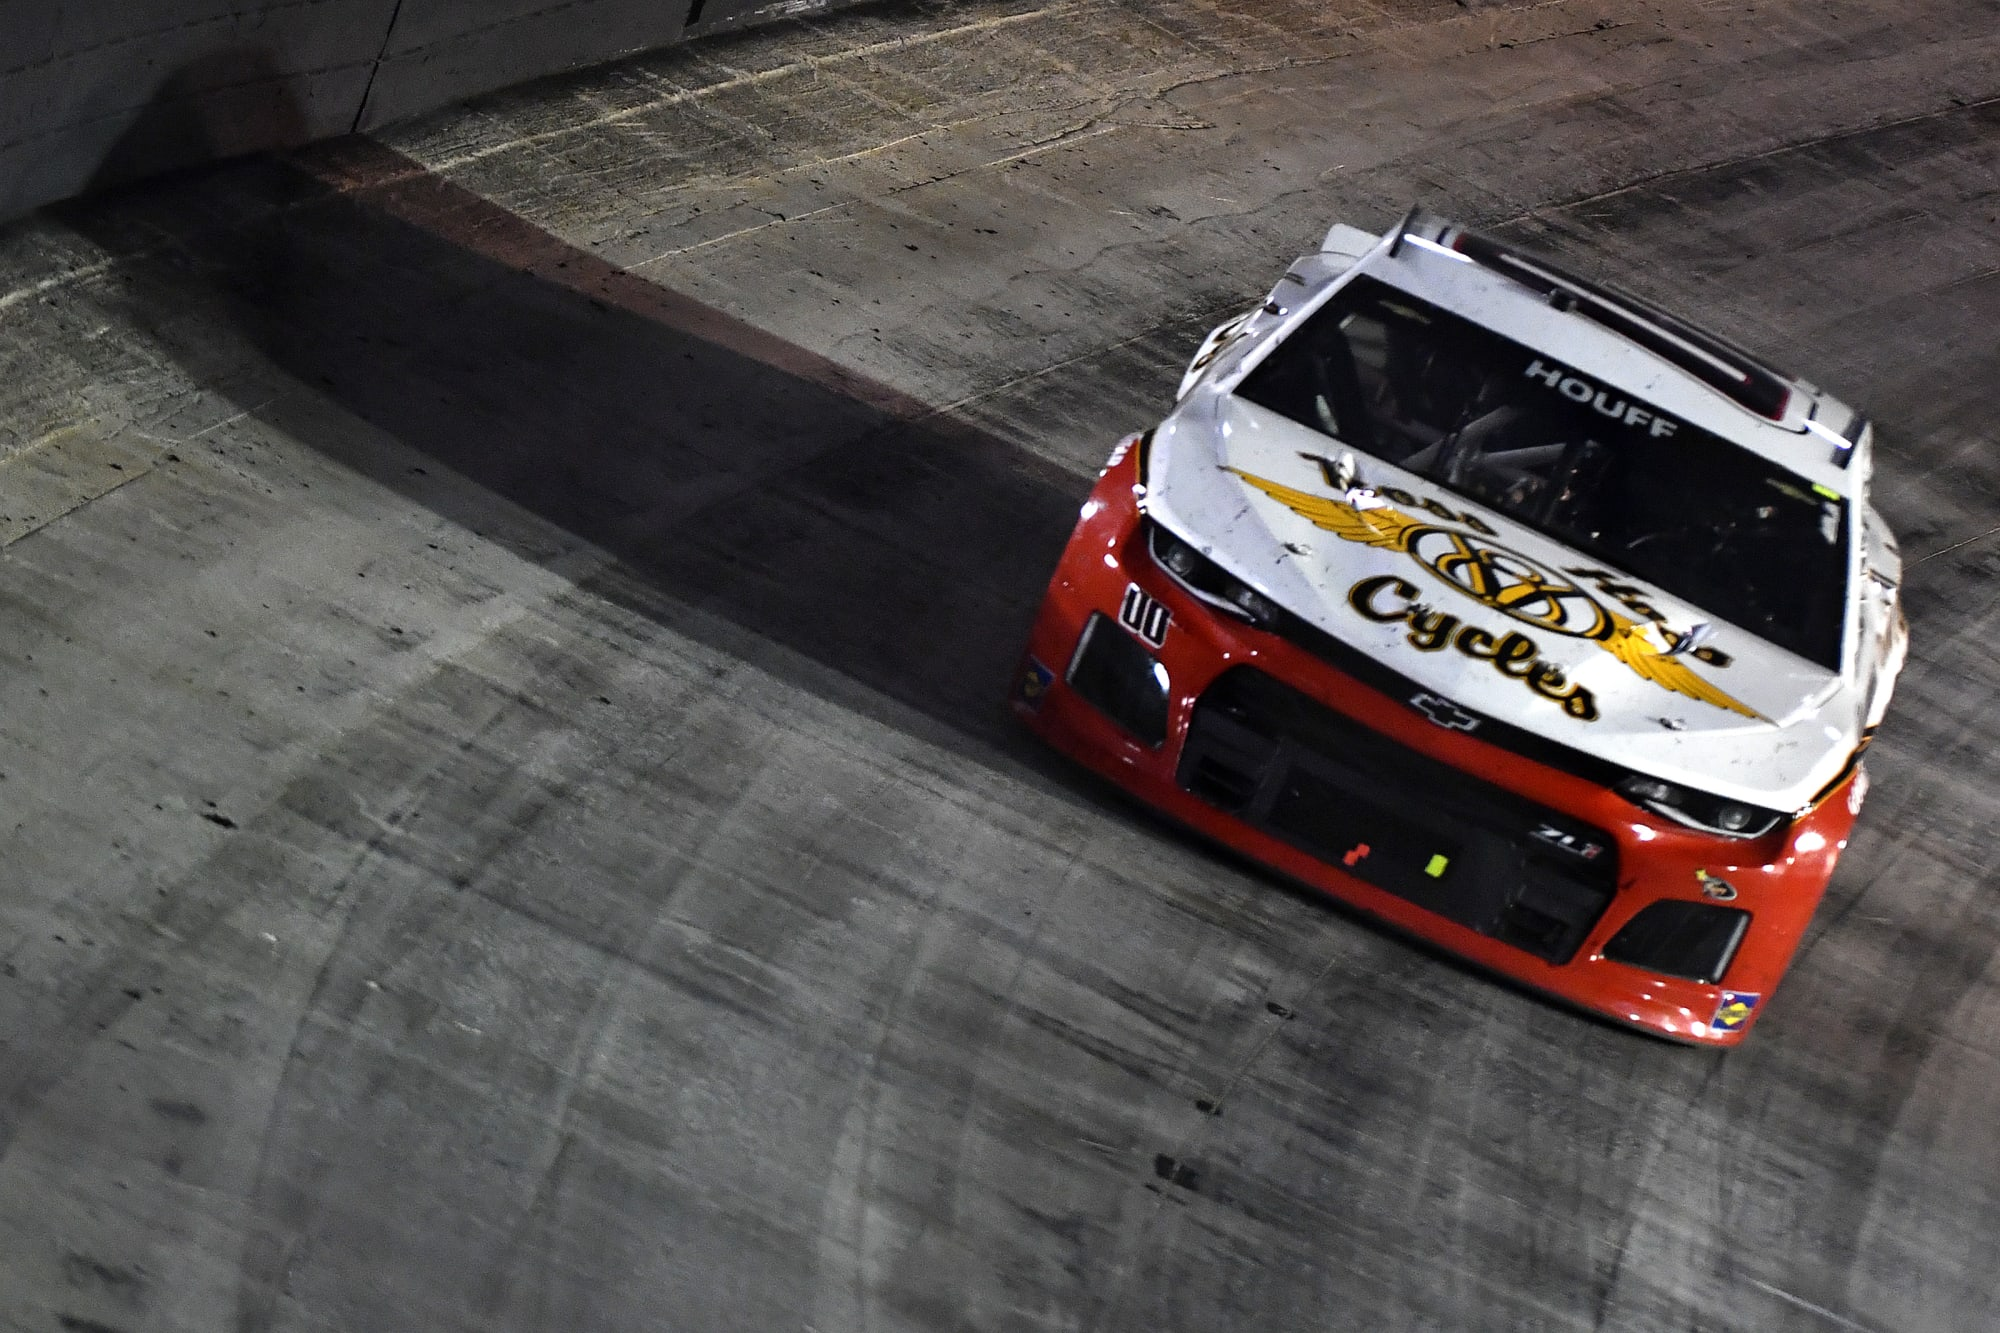 NASCAR: The missing puzzle piece that has fans wondering - Beyond the Flag